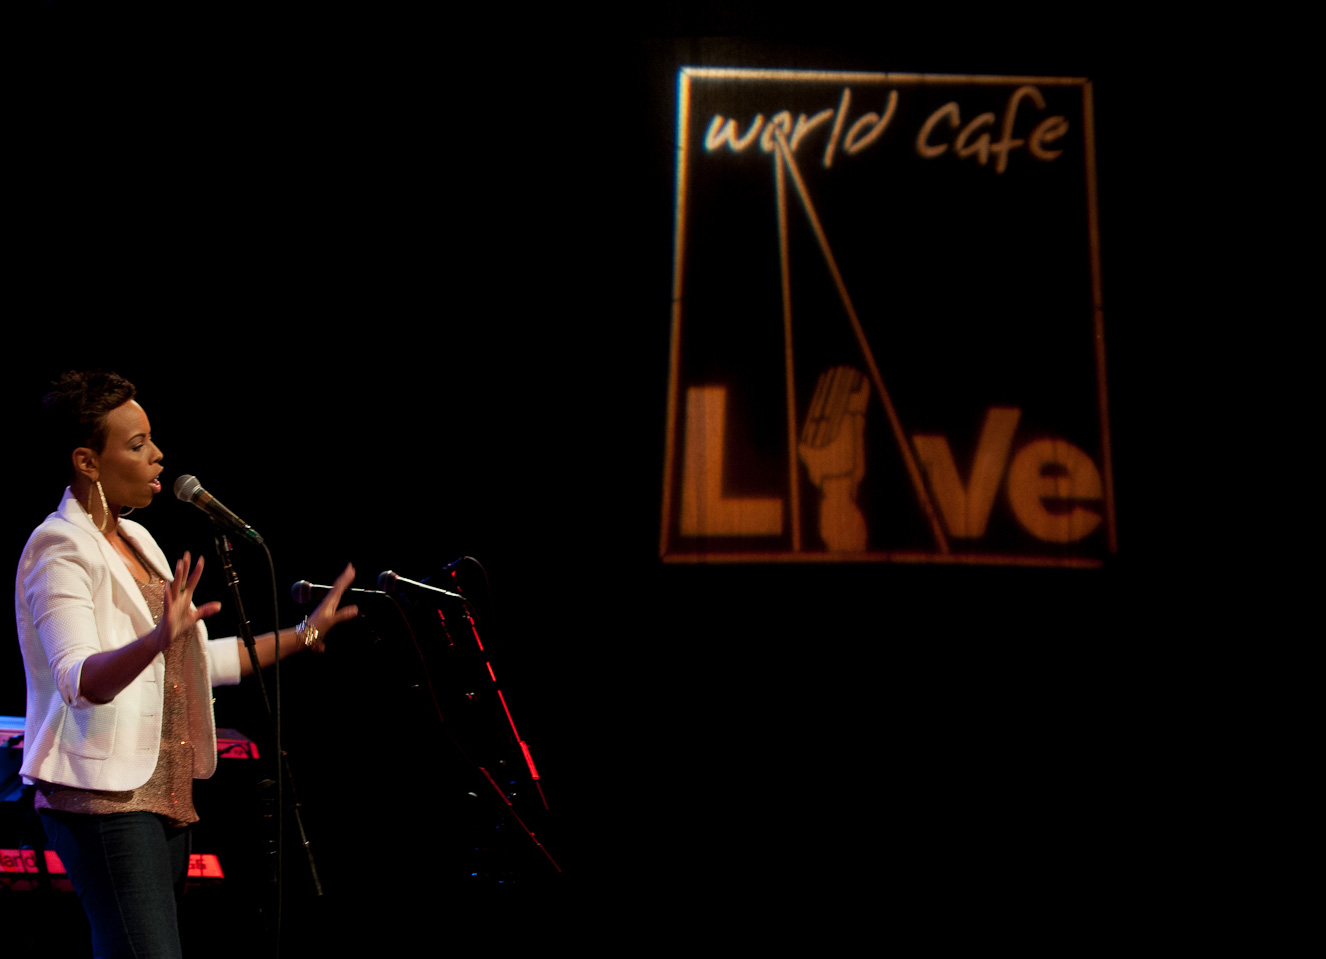 temika-moore-inspirational-soul-and-jazz-world-cafe-live-philly-VTP1008.jpg